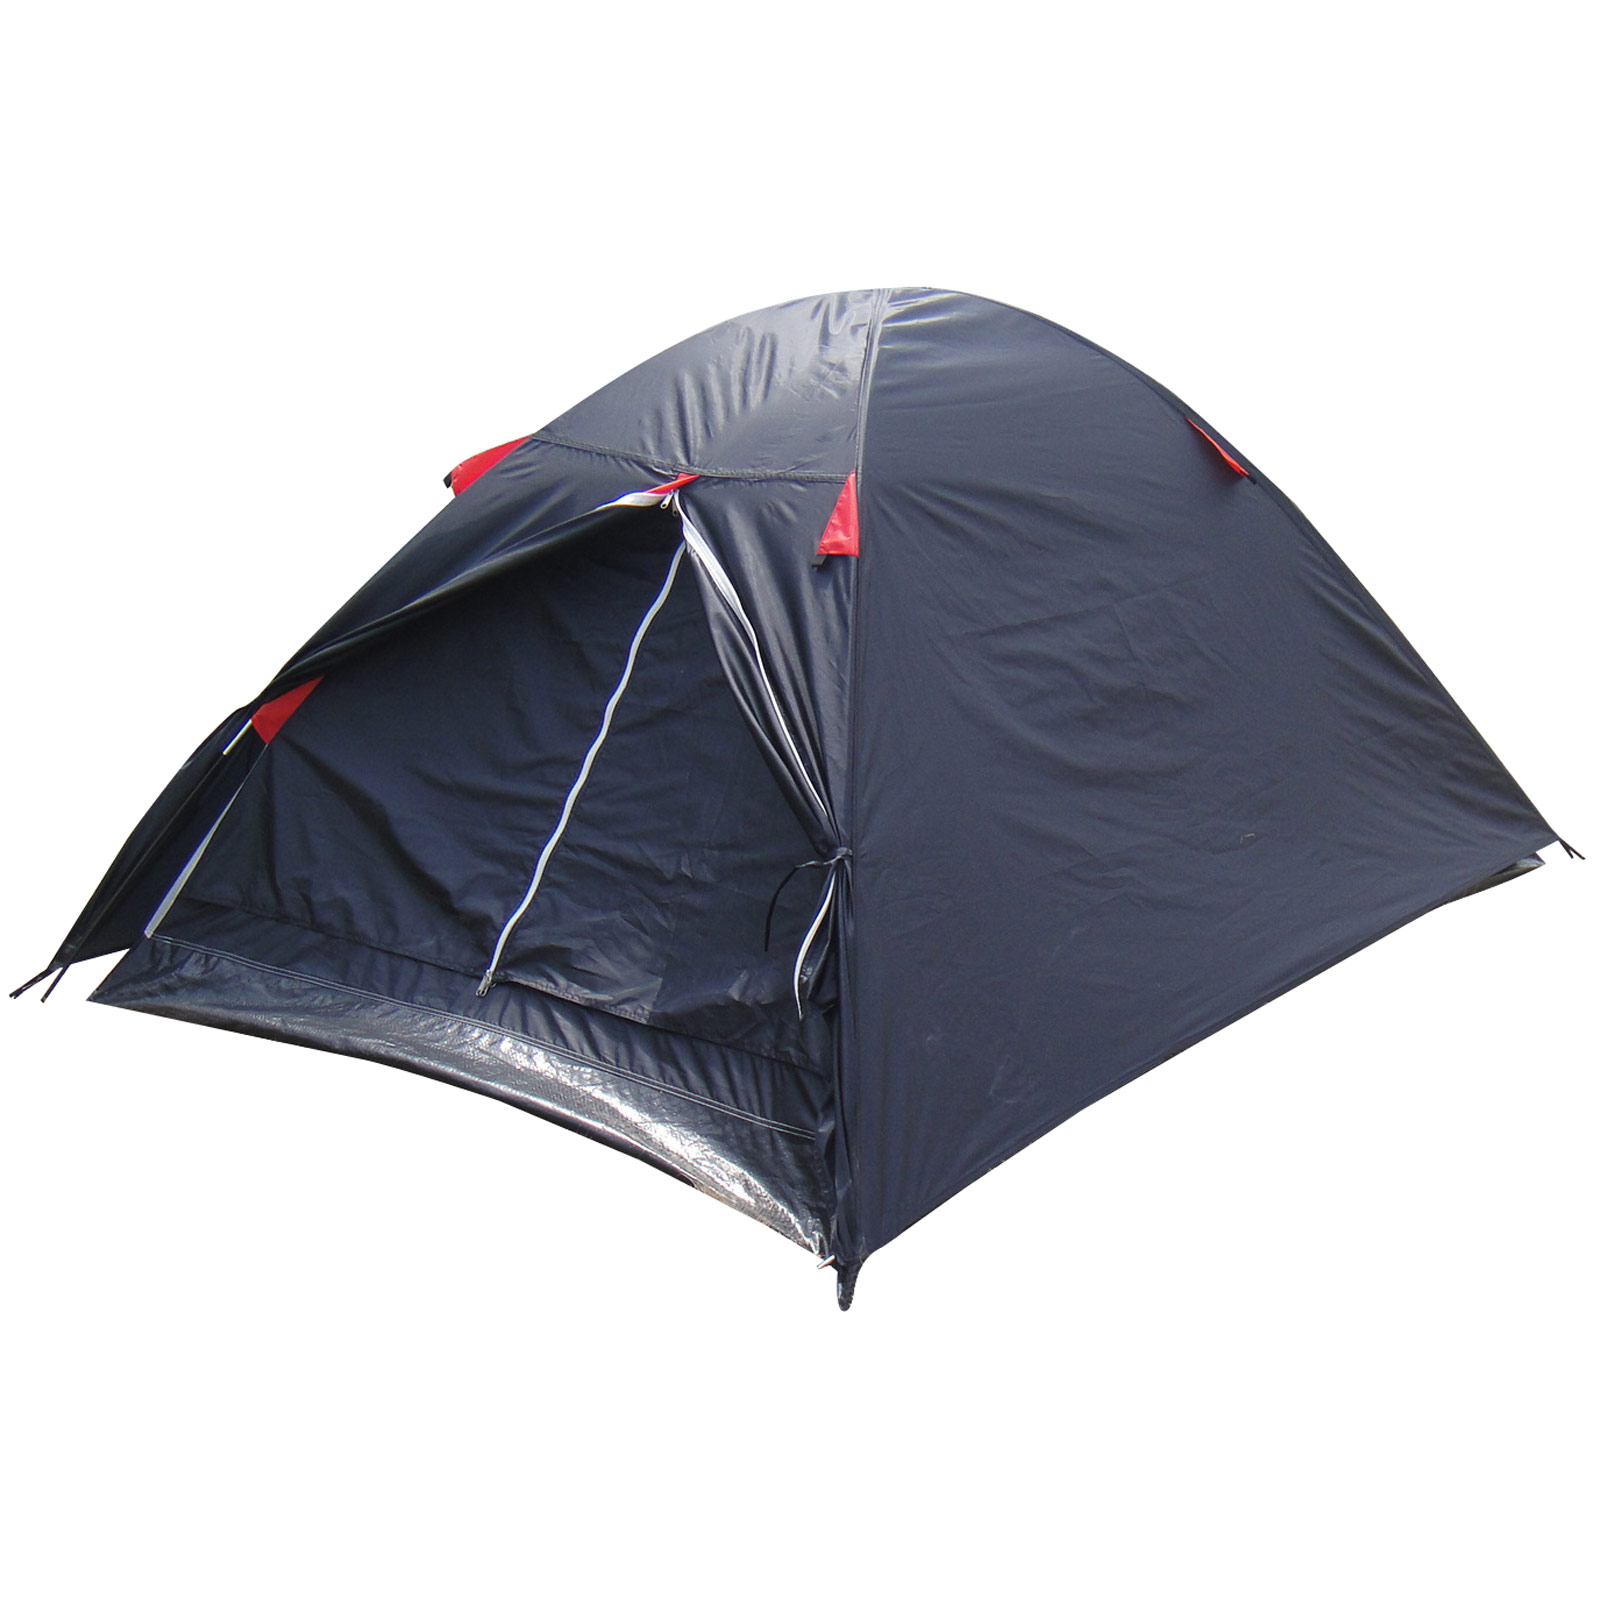 2 man single skin tent The right tent can mean the difference between a pleasant holiday or a disaster here are 8 of the best two man tents.